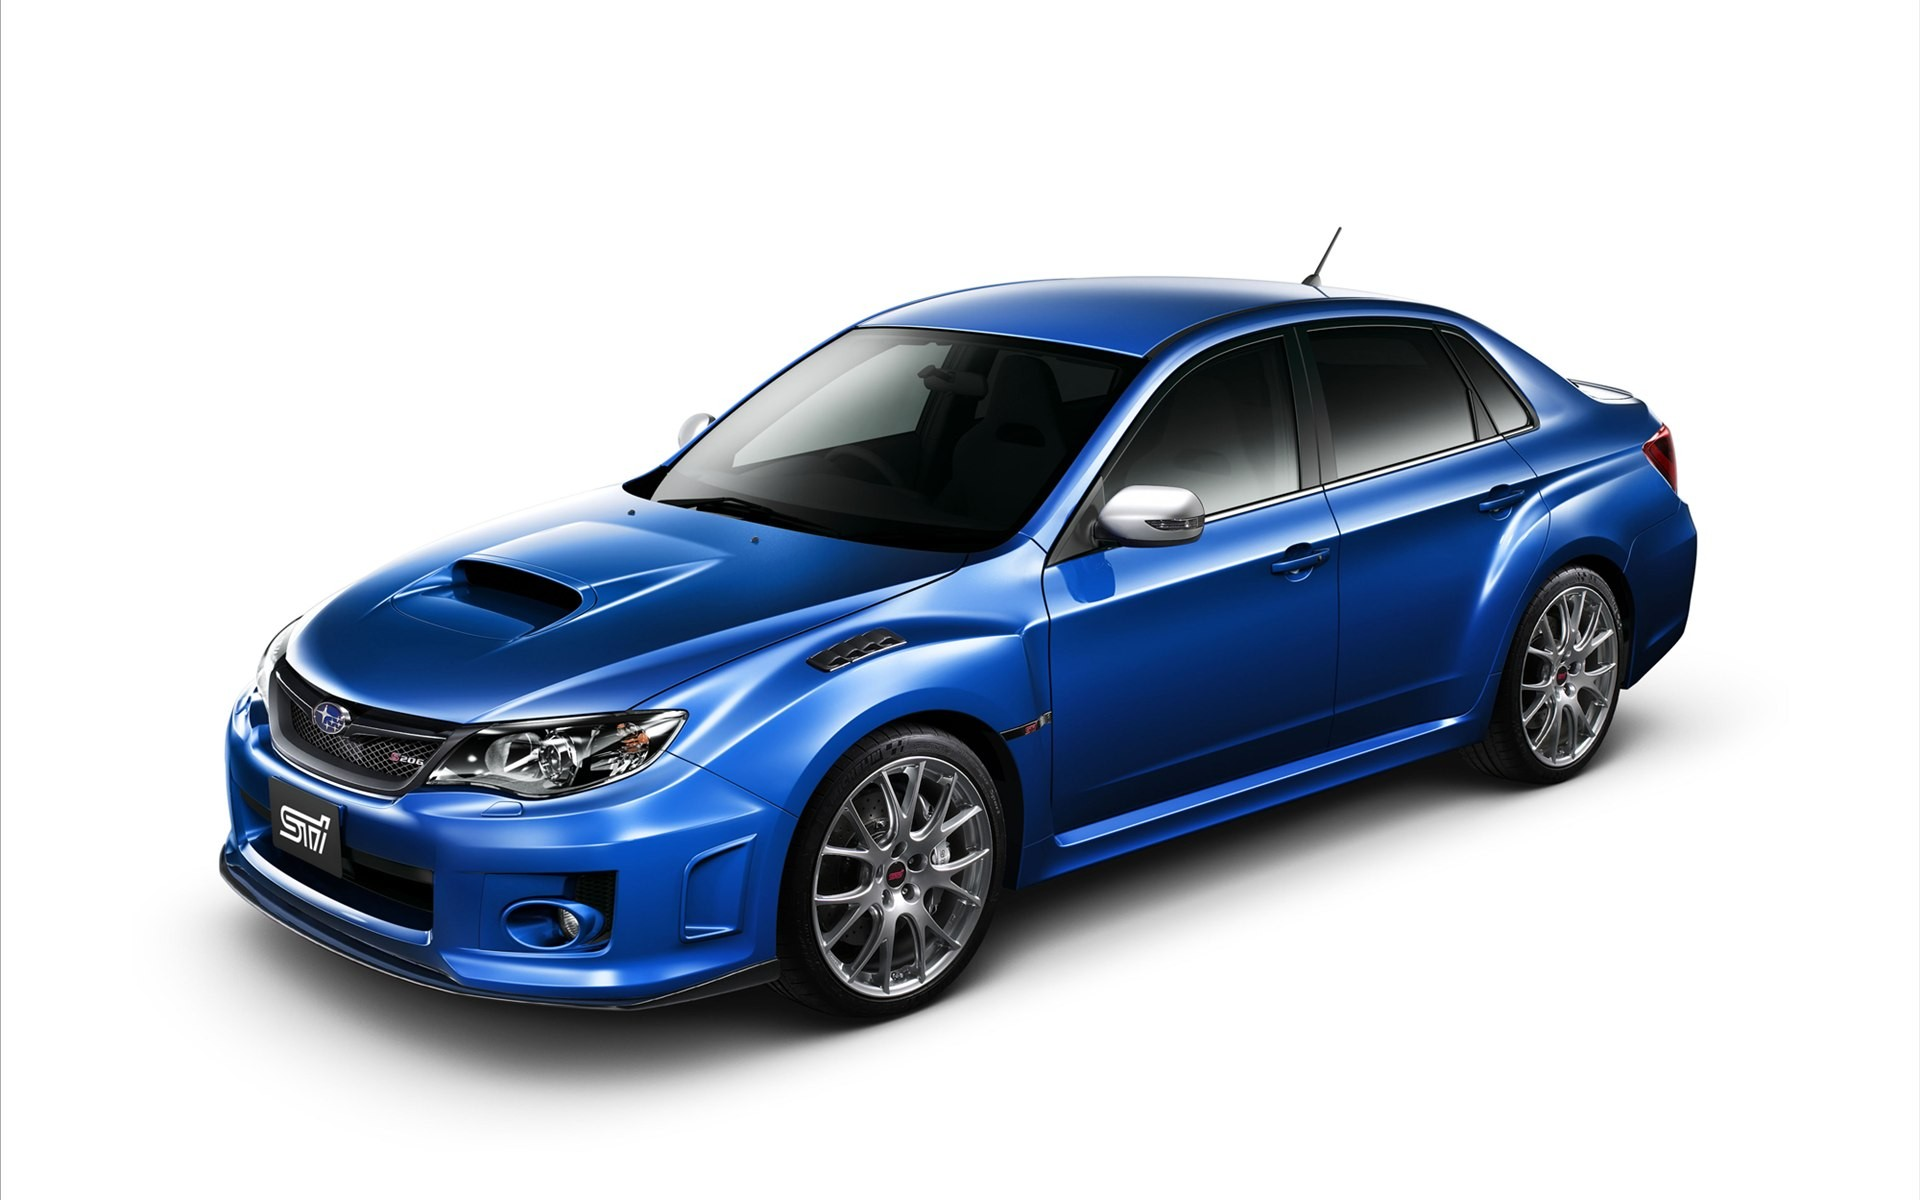 SUBARU IMPREZA WRX 2012 Wallpaper | HD Car Wallpapers | ID ...